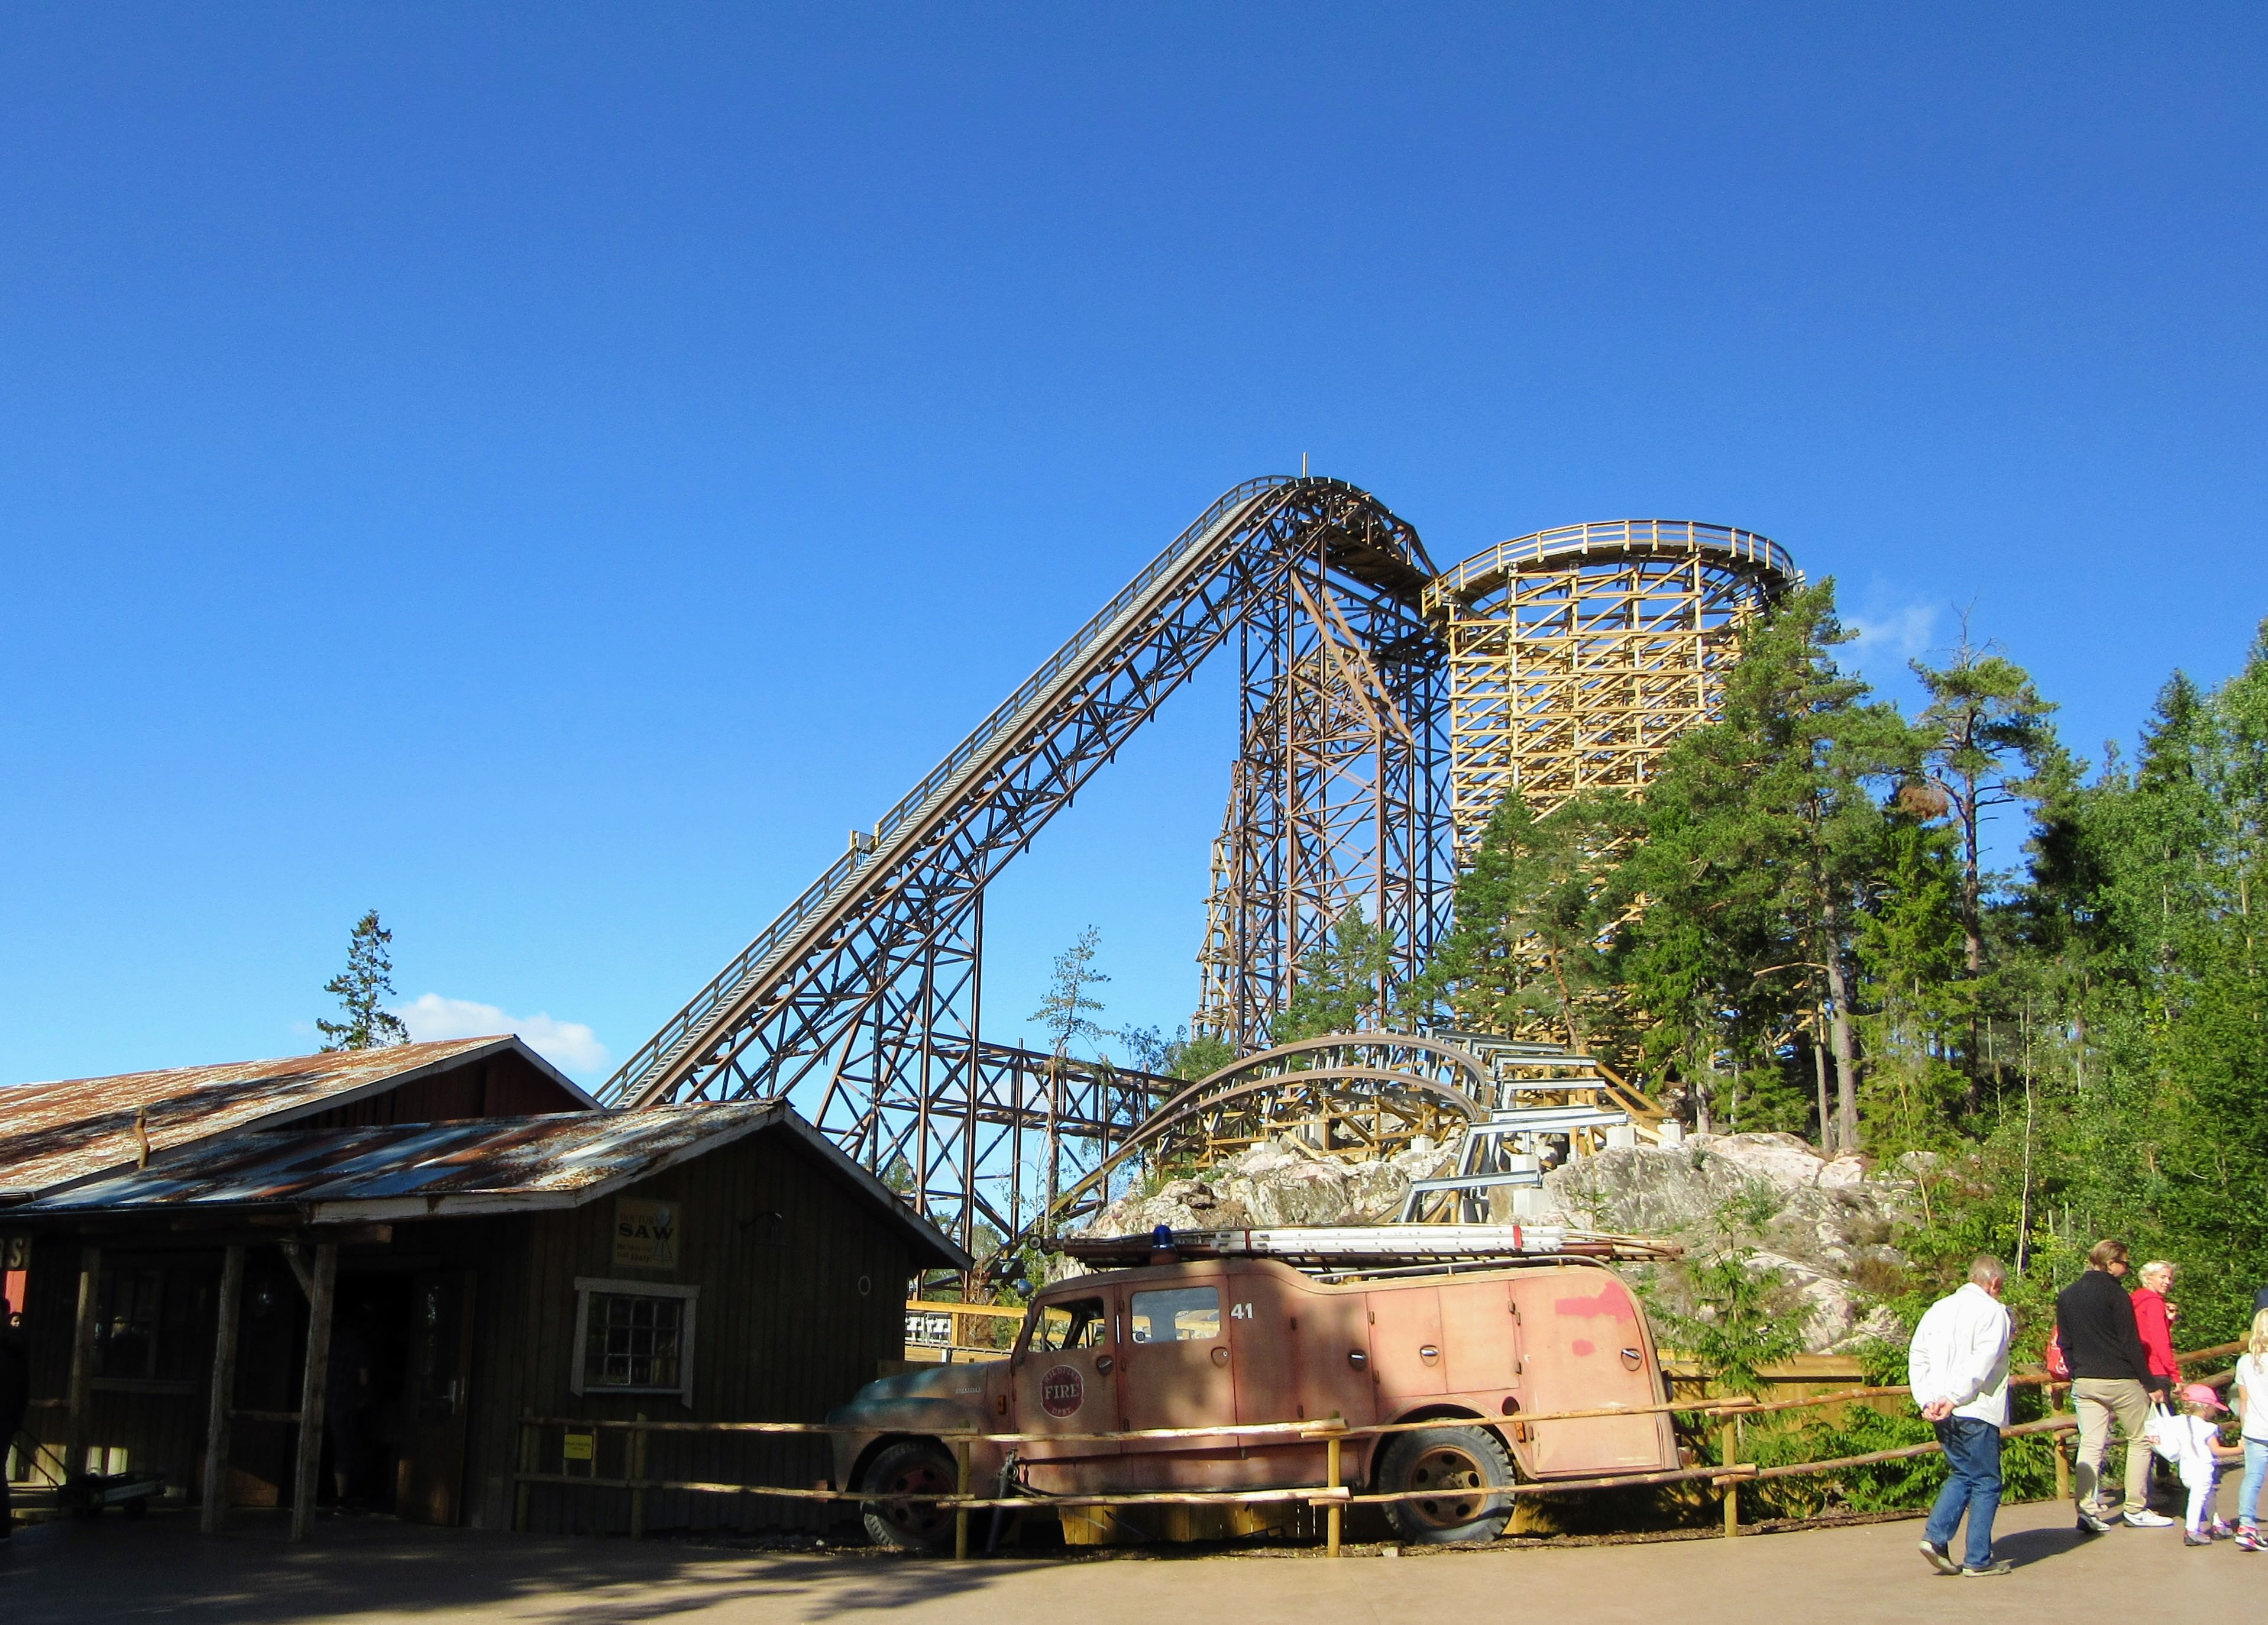 Wildfire roller coaster at Kolmården.